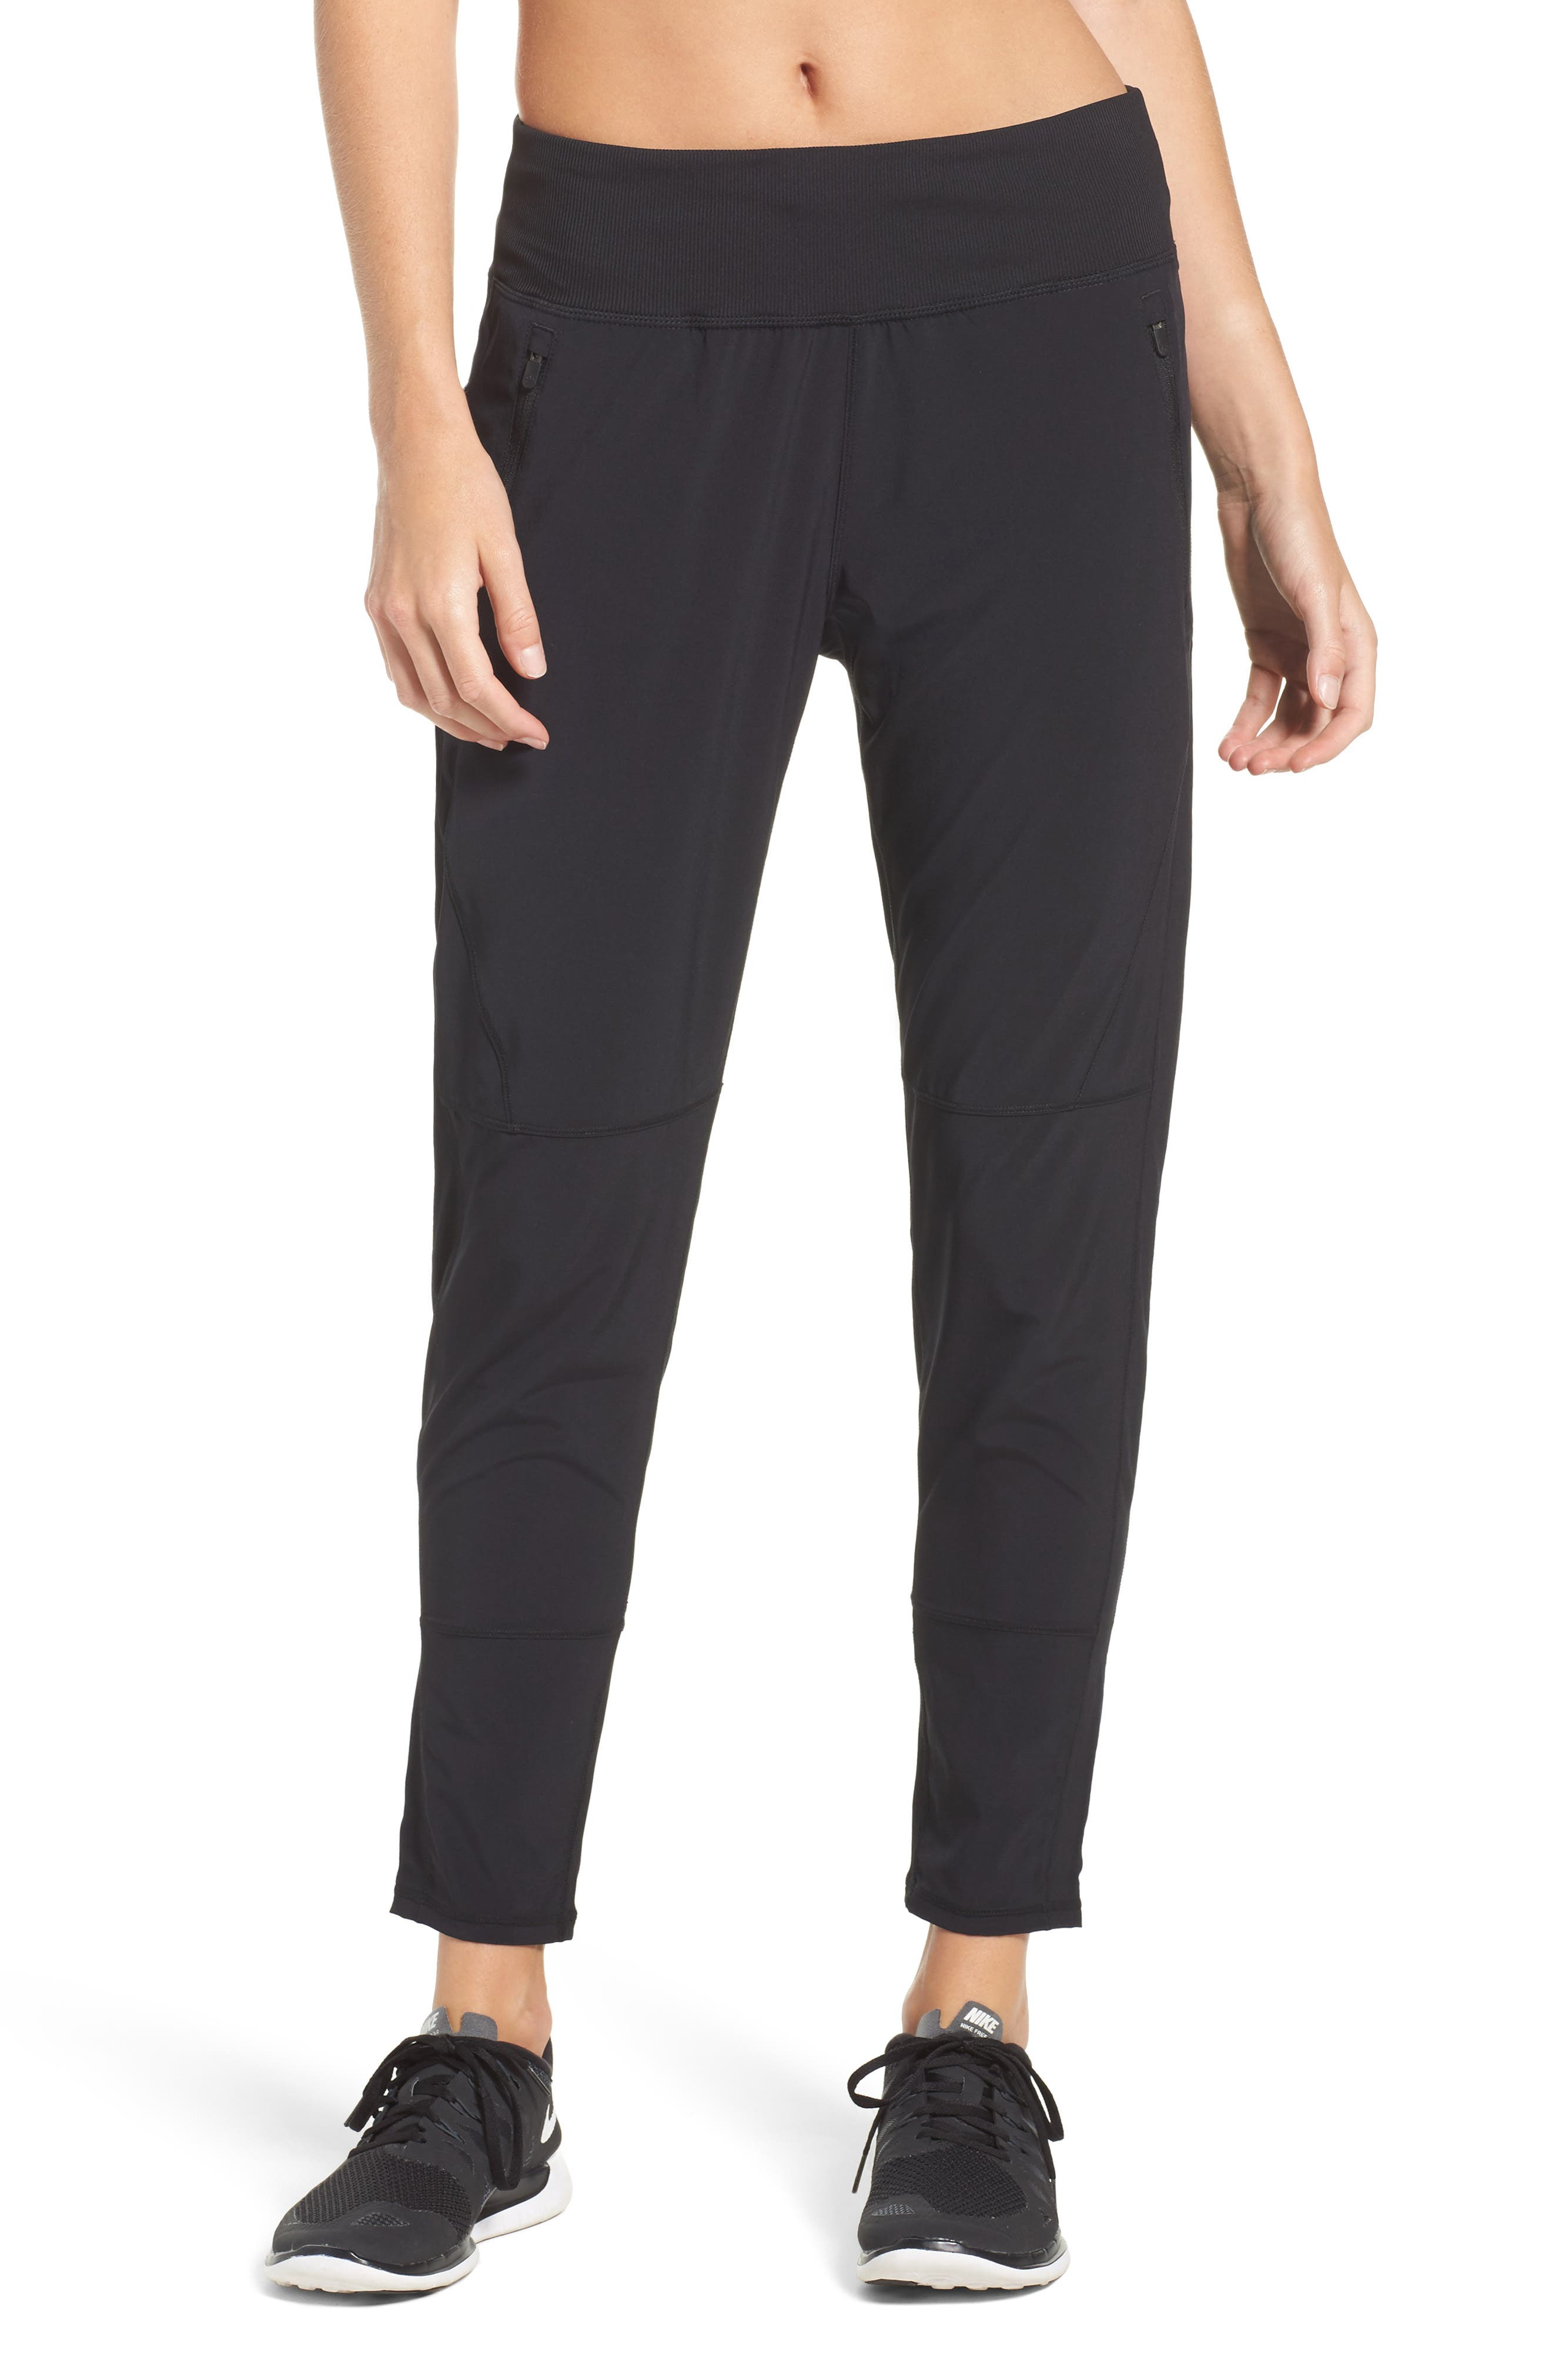 Alternate Image 1 Selected - Zella Transition Ankle Pants